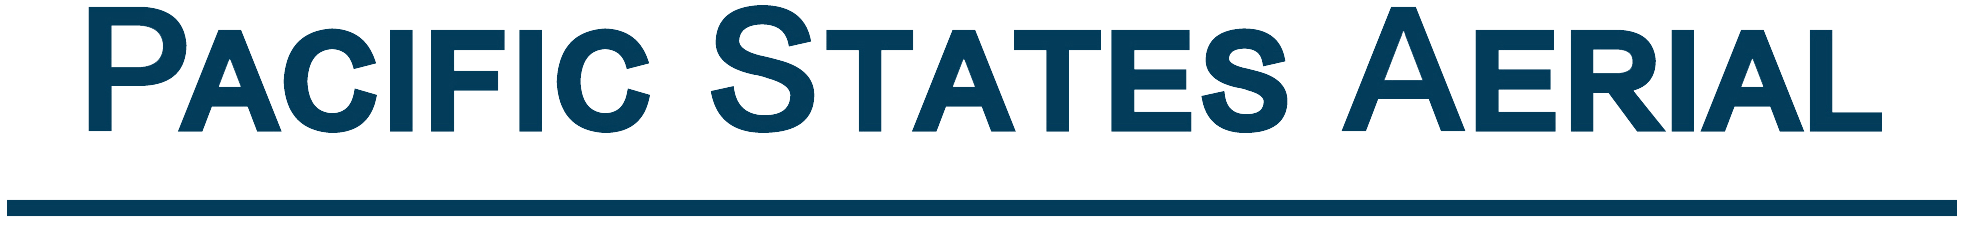 Pacific States Aerial logo